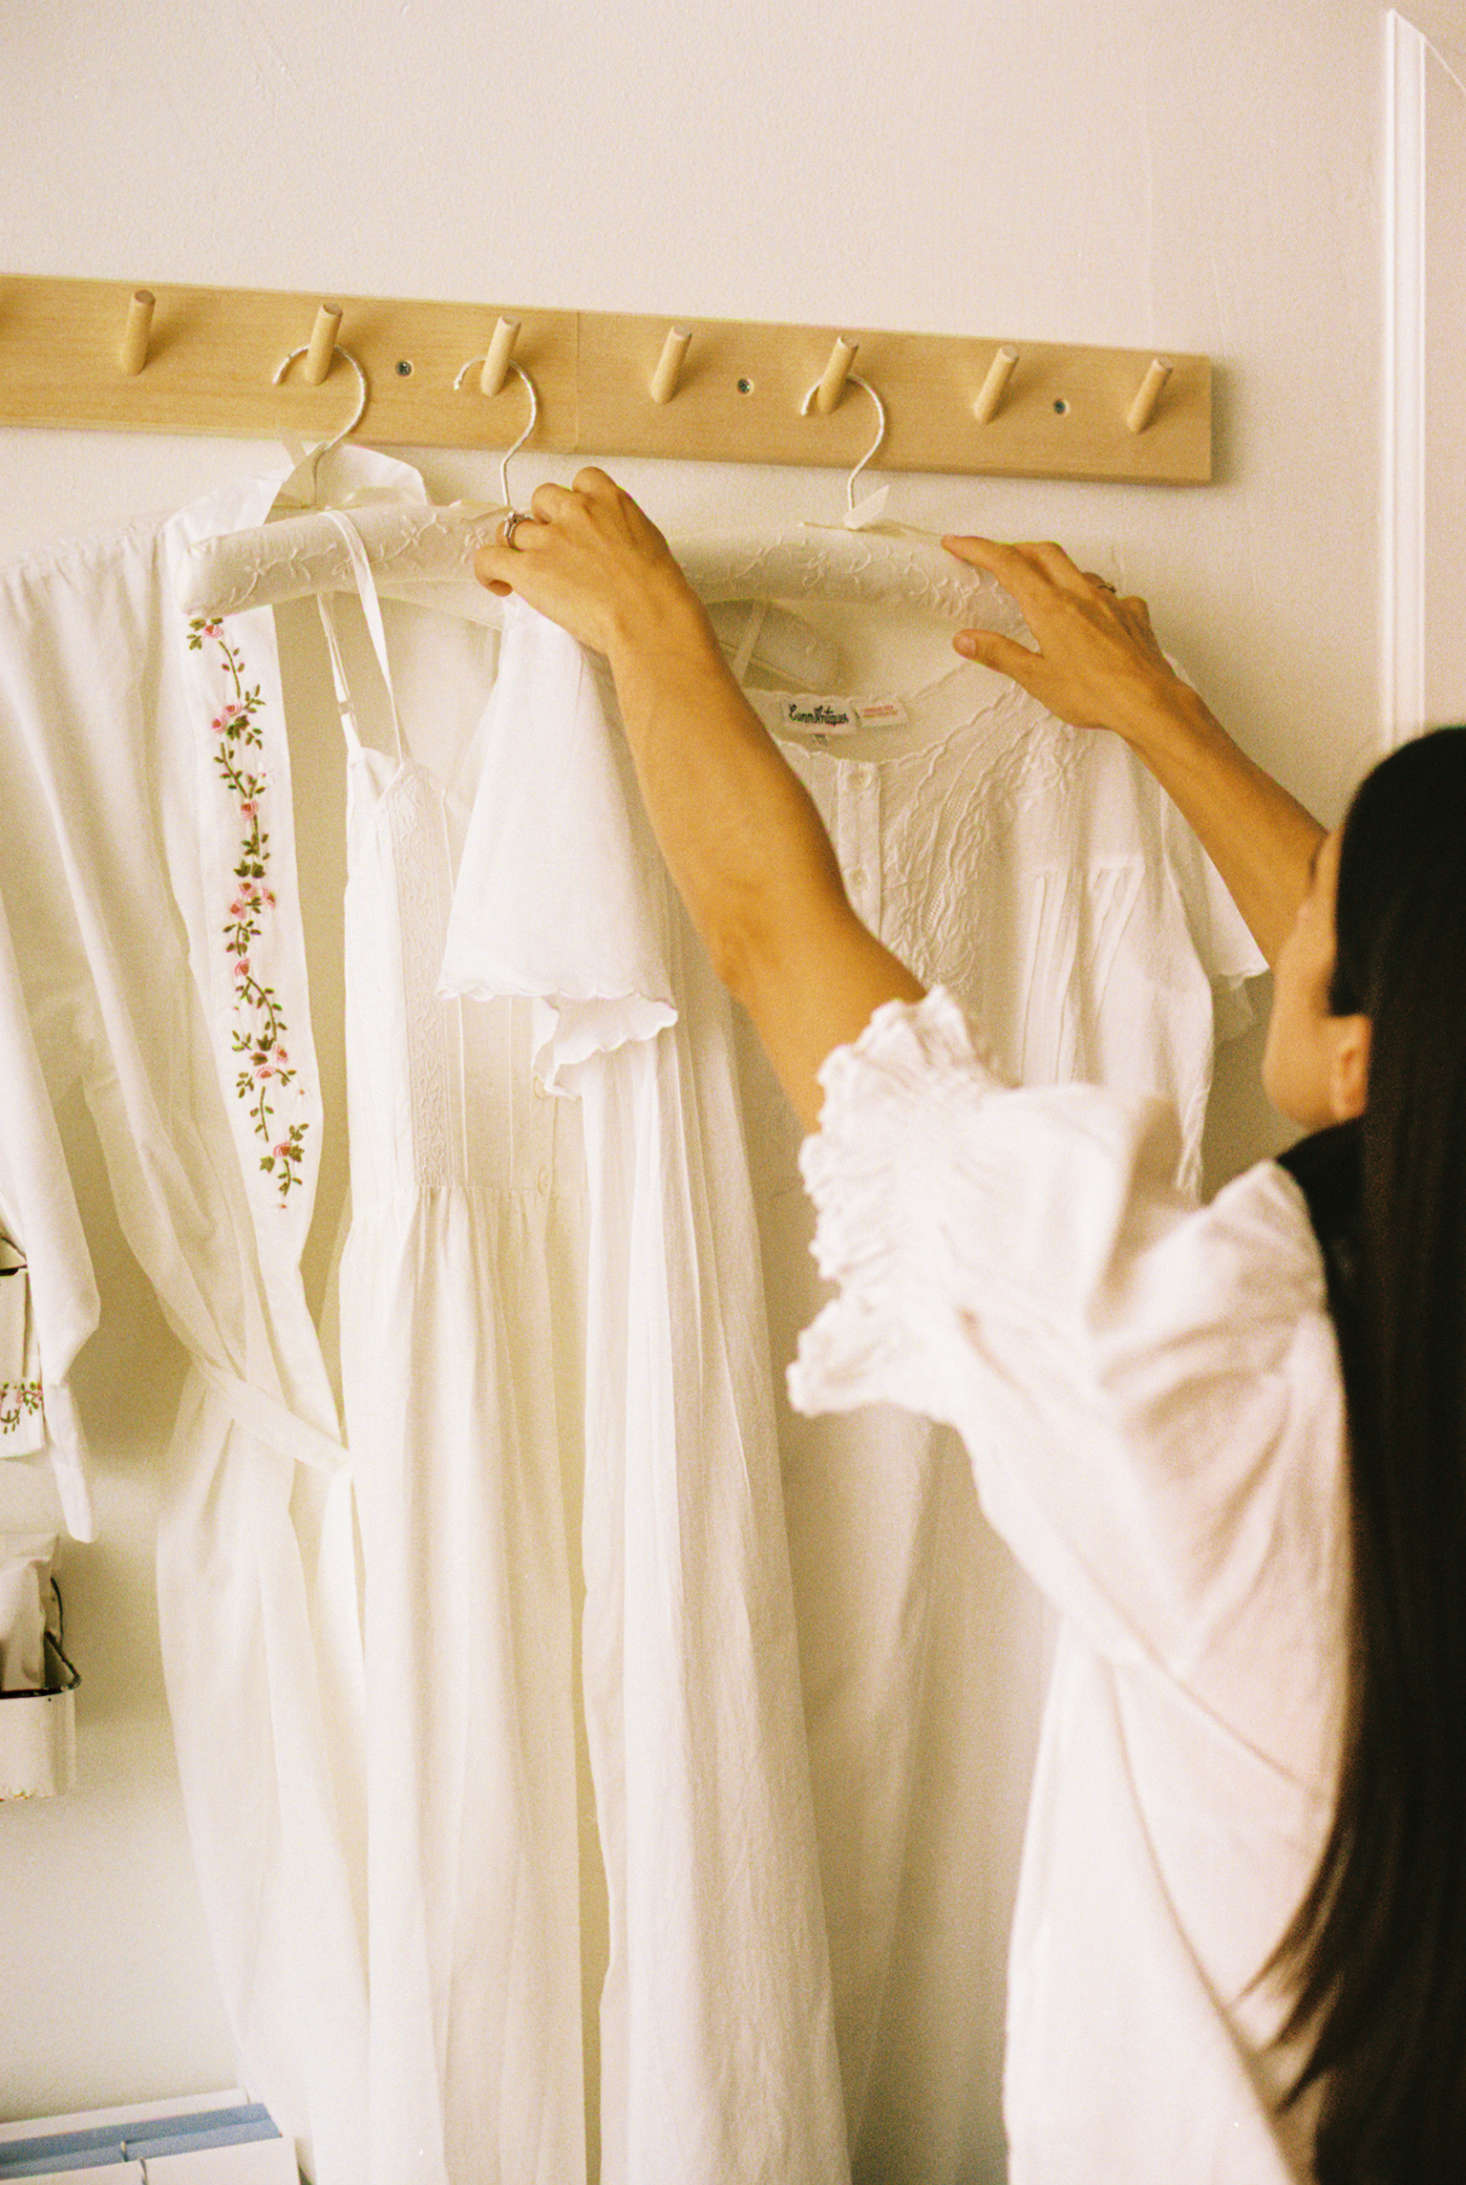 Also on offer: white cotton nightdresses.